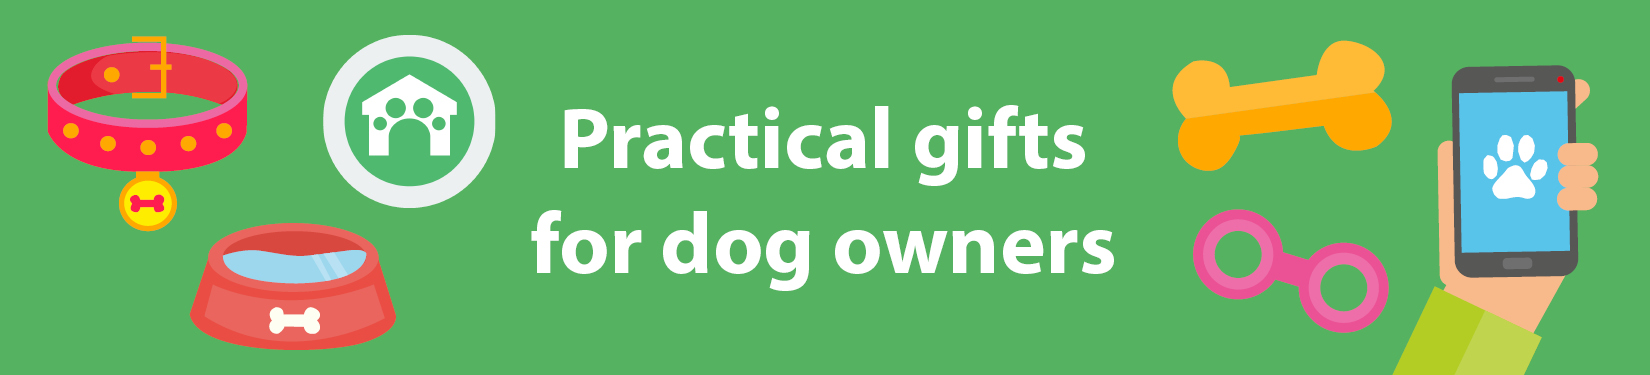 Practical gifts for dog owners header image